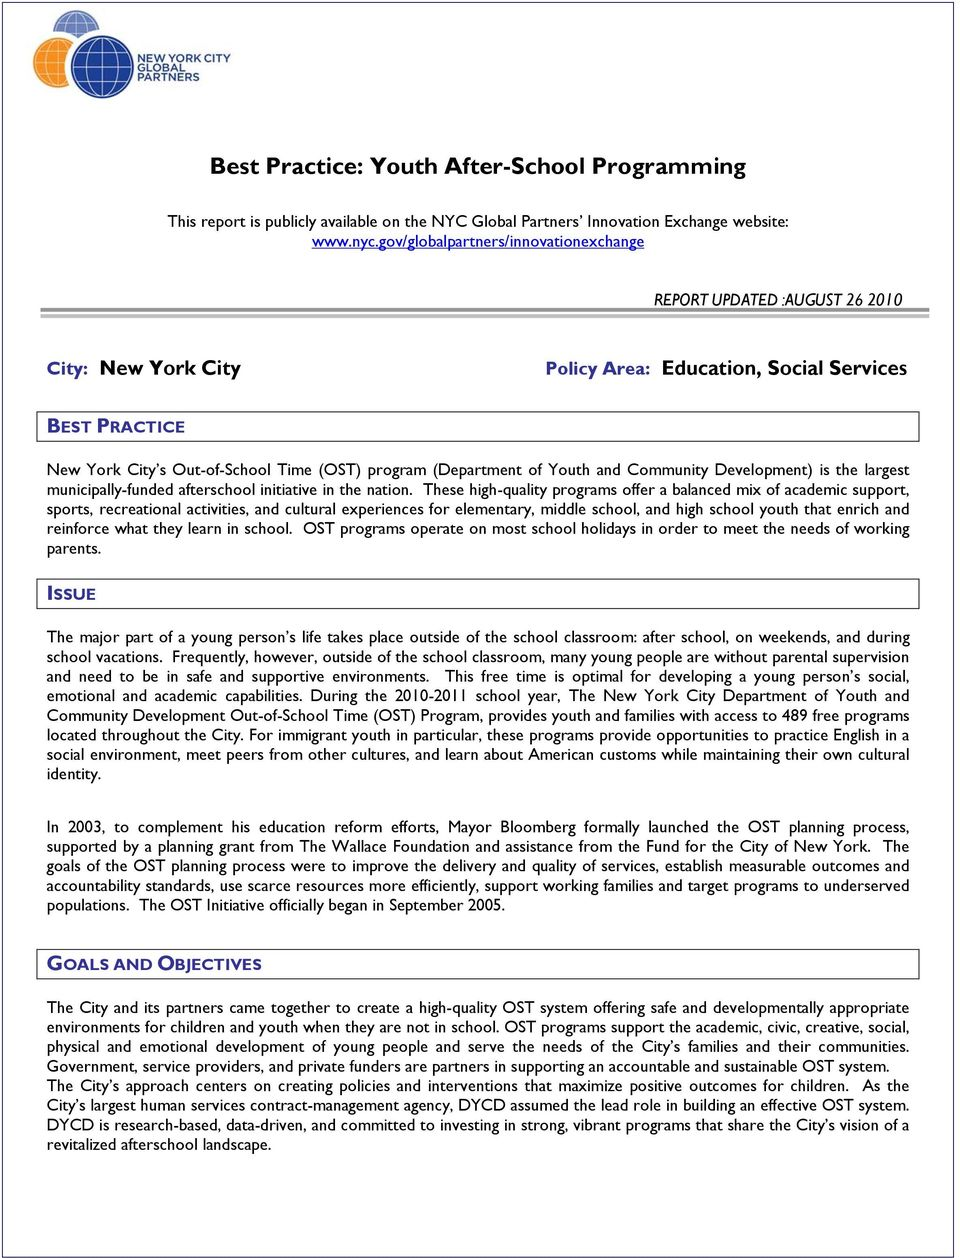 Best Practice: Youth After-School Programming - PDF